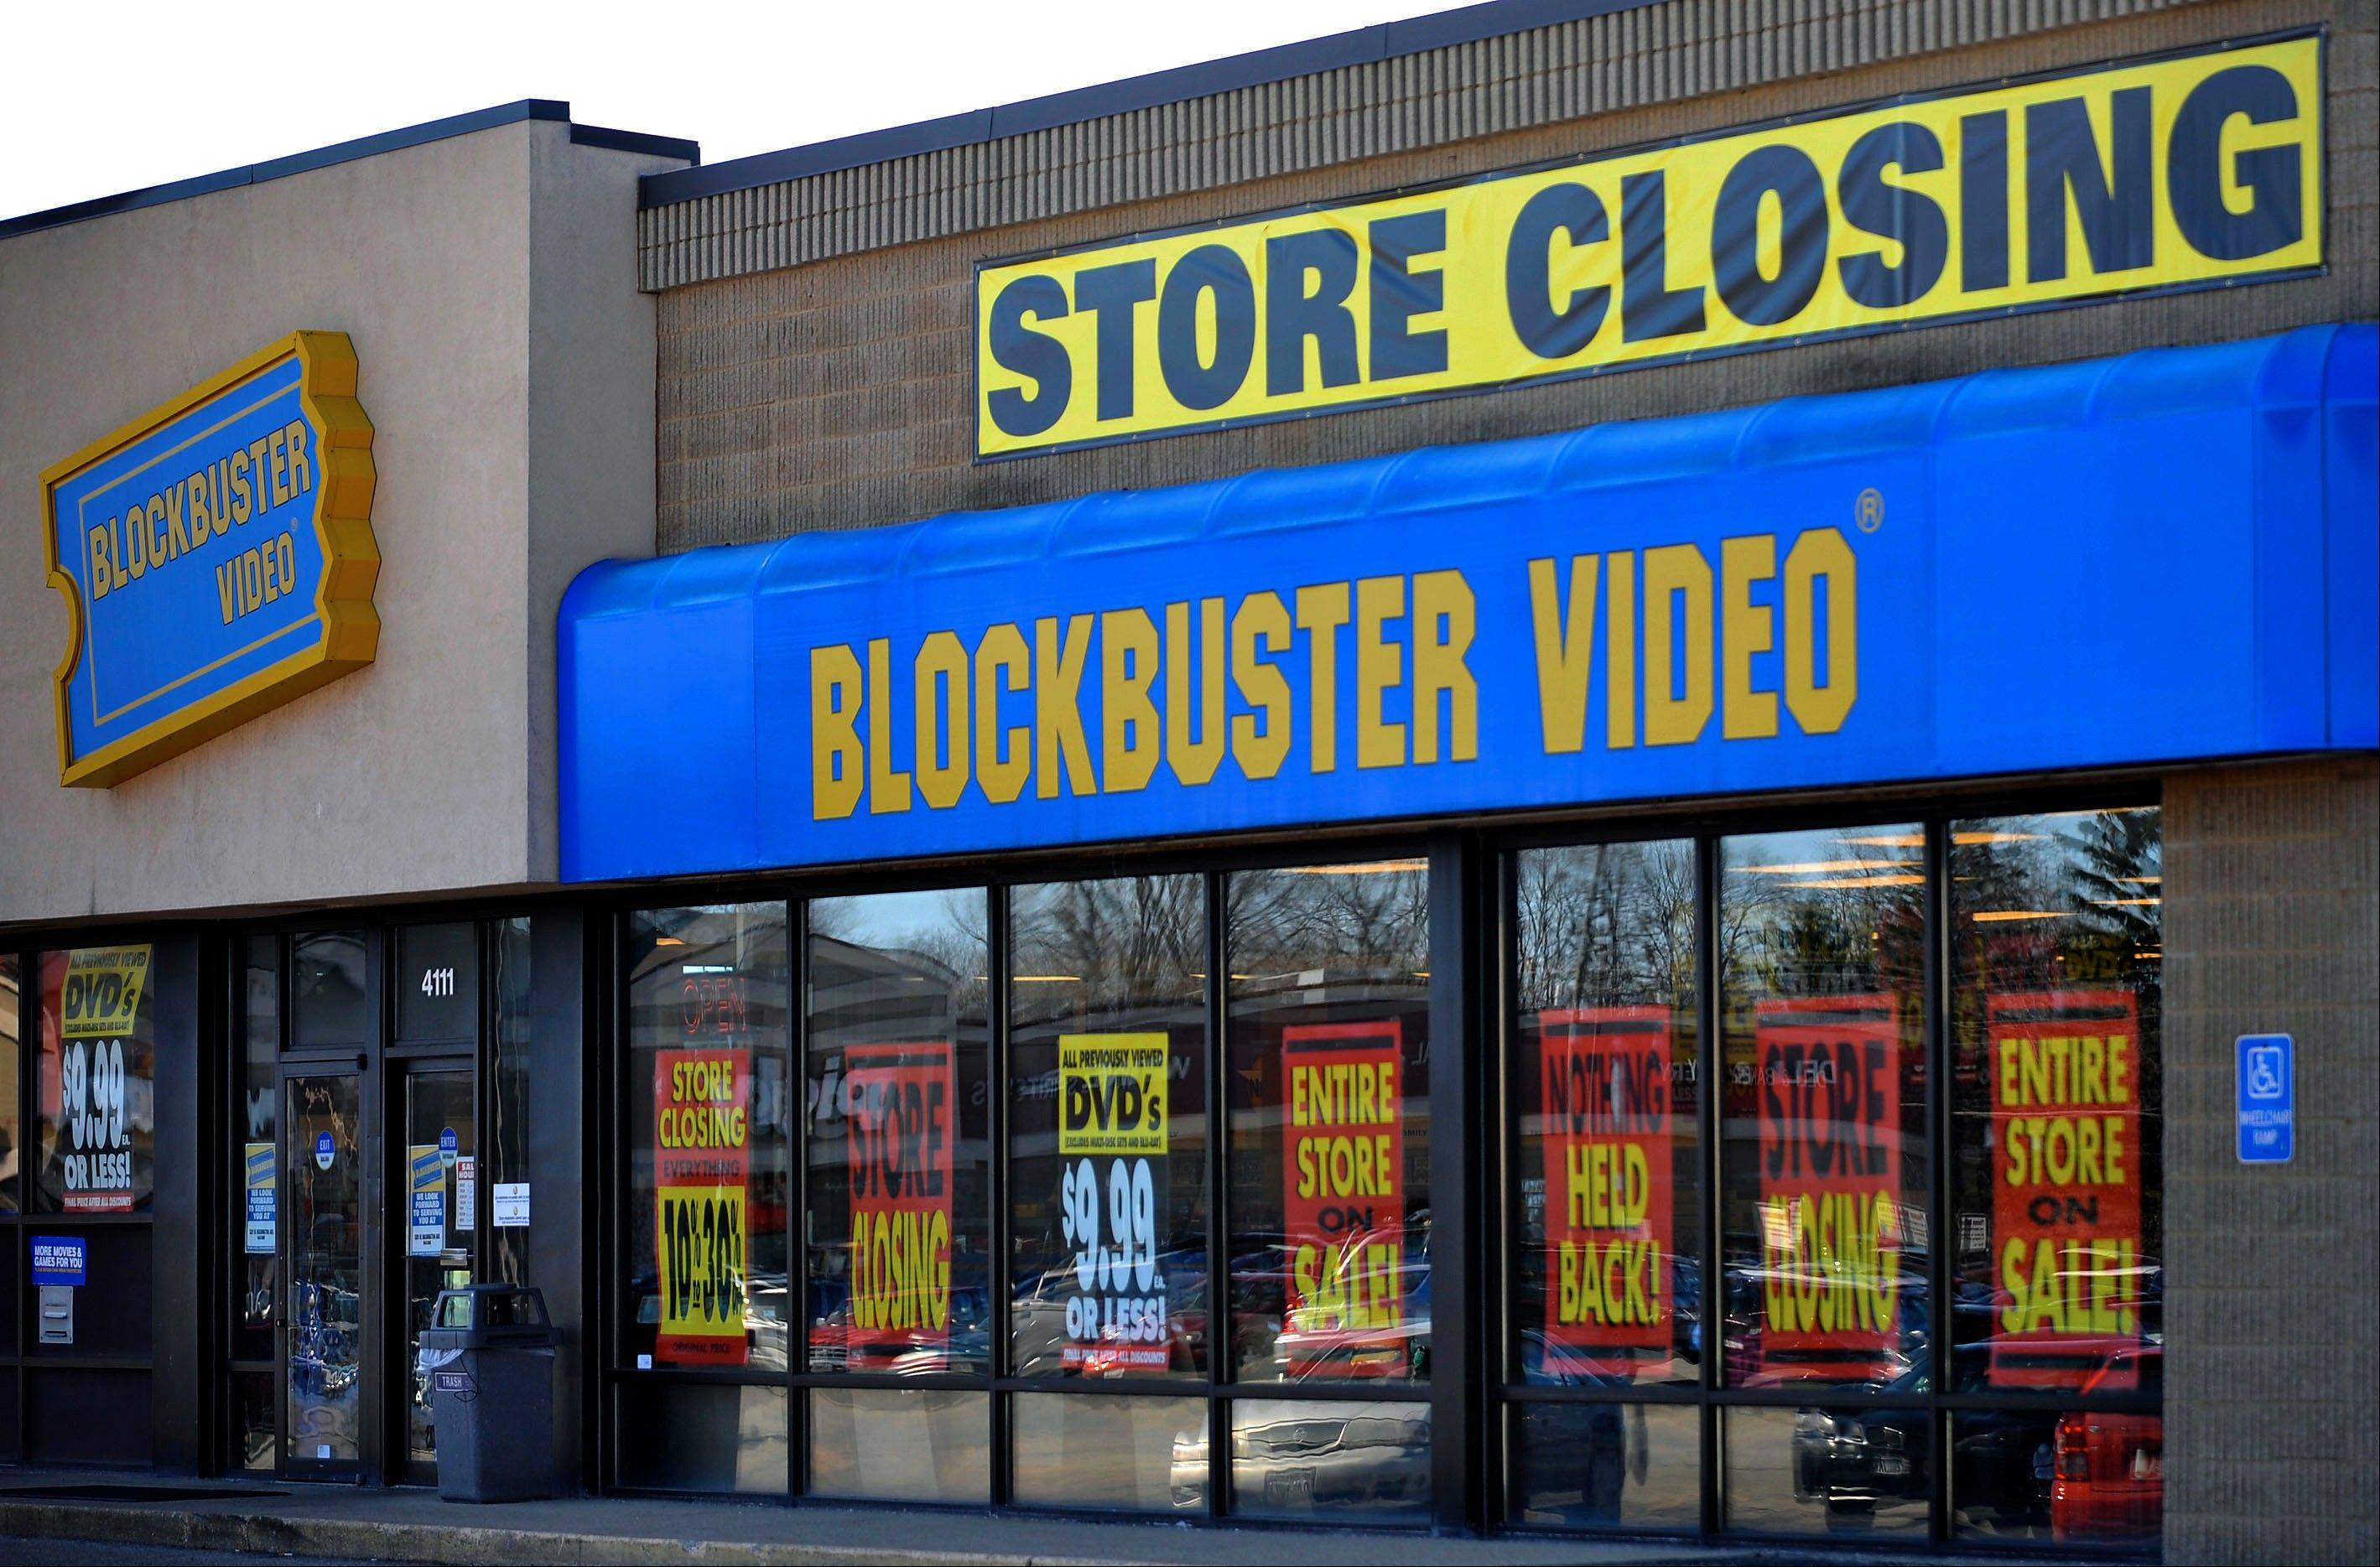 Blockbuster, the video-rental company owned by Dish Network Corp., will close its remaining 300 U.S. stores, ending an era for a chain that was once a ubiquitous part of American shopping centers.